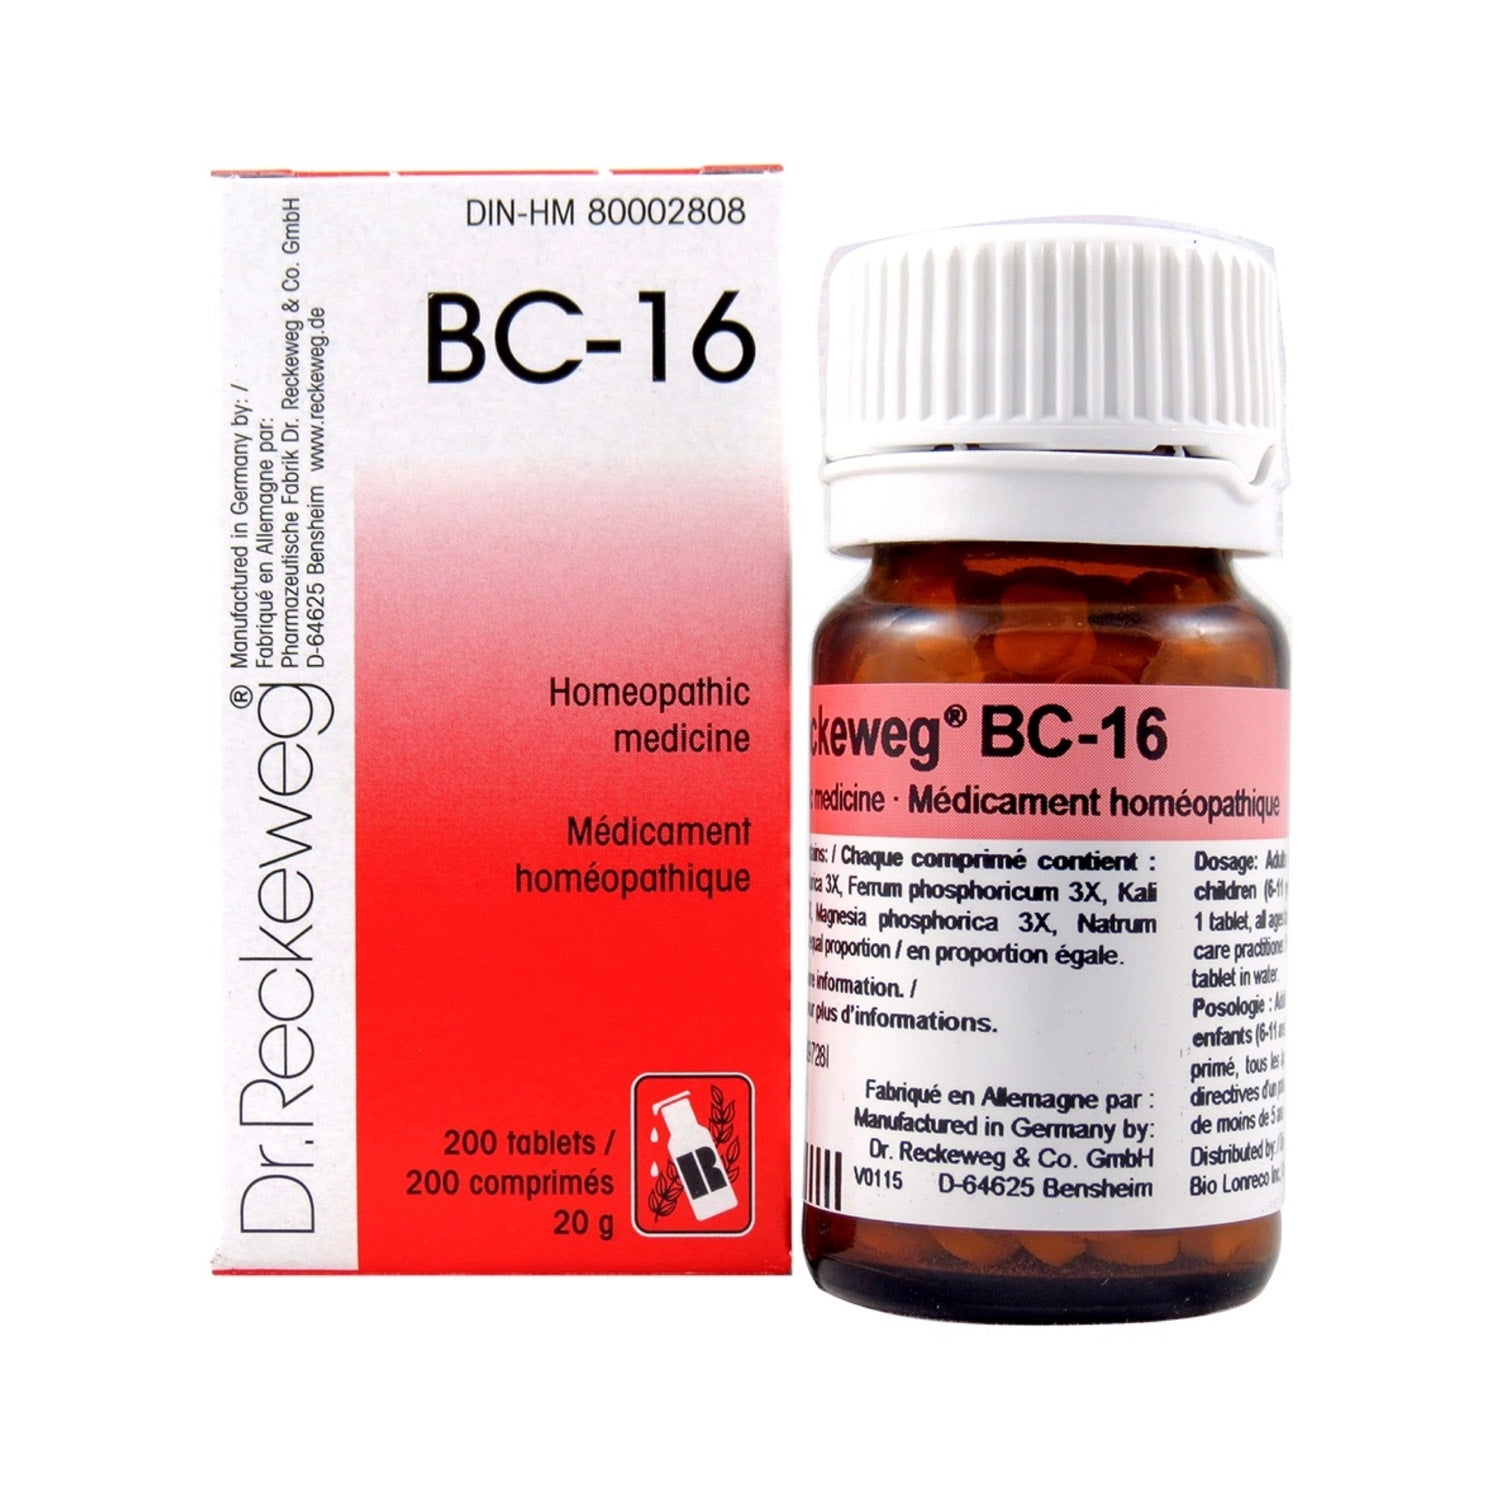 BC-16 Homeopathic medicine – Combination salt  200 tablets (20 g)